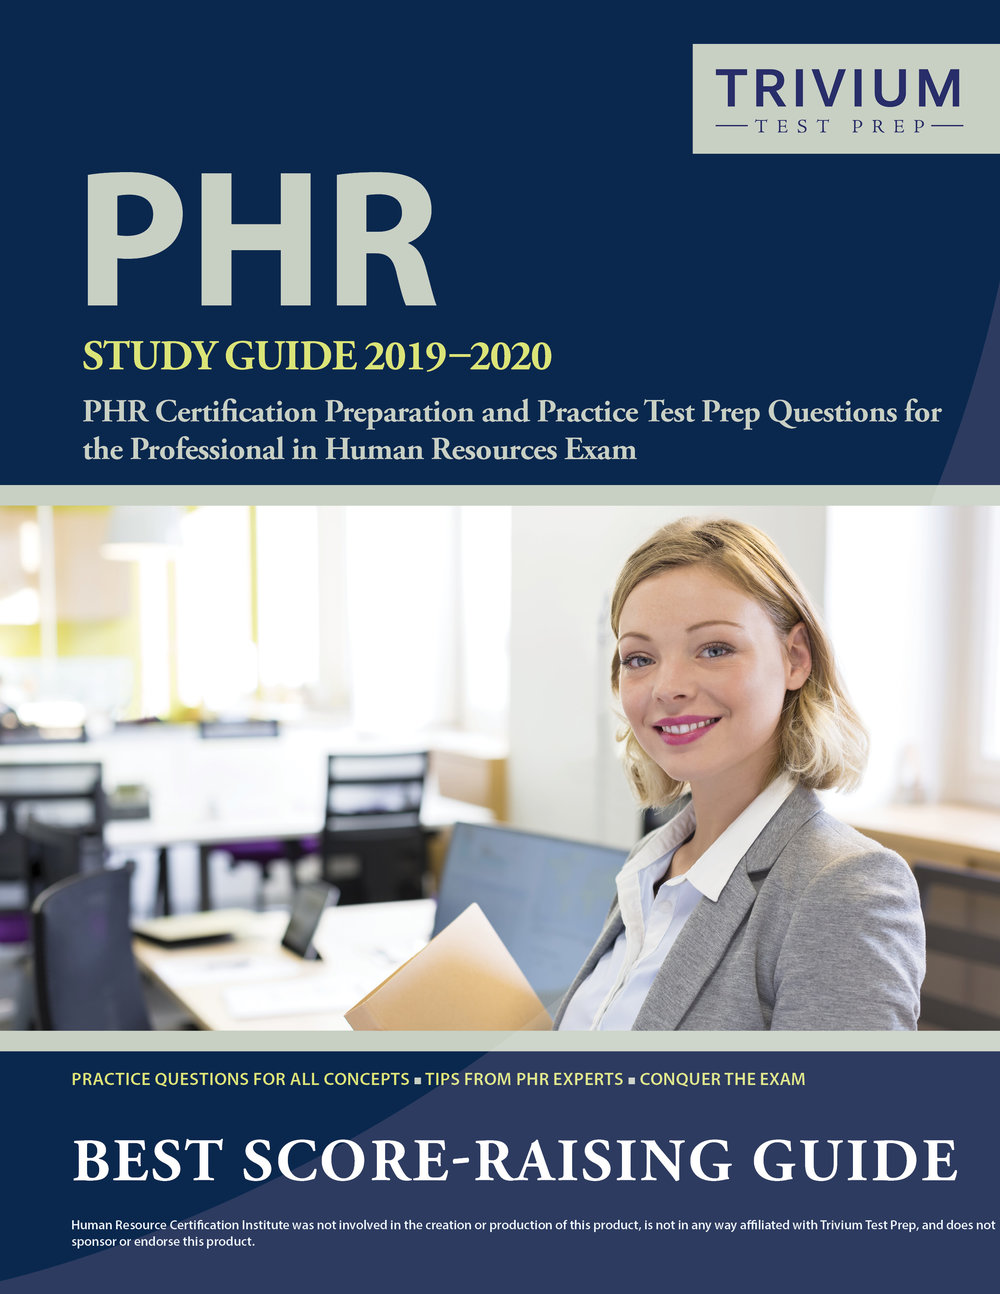 PHR Study Guide Certification Preparation and Practice Test Questions